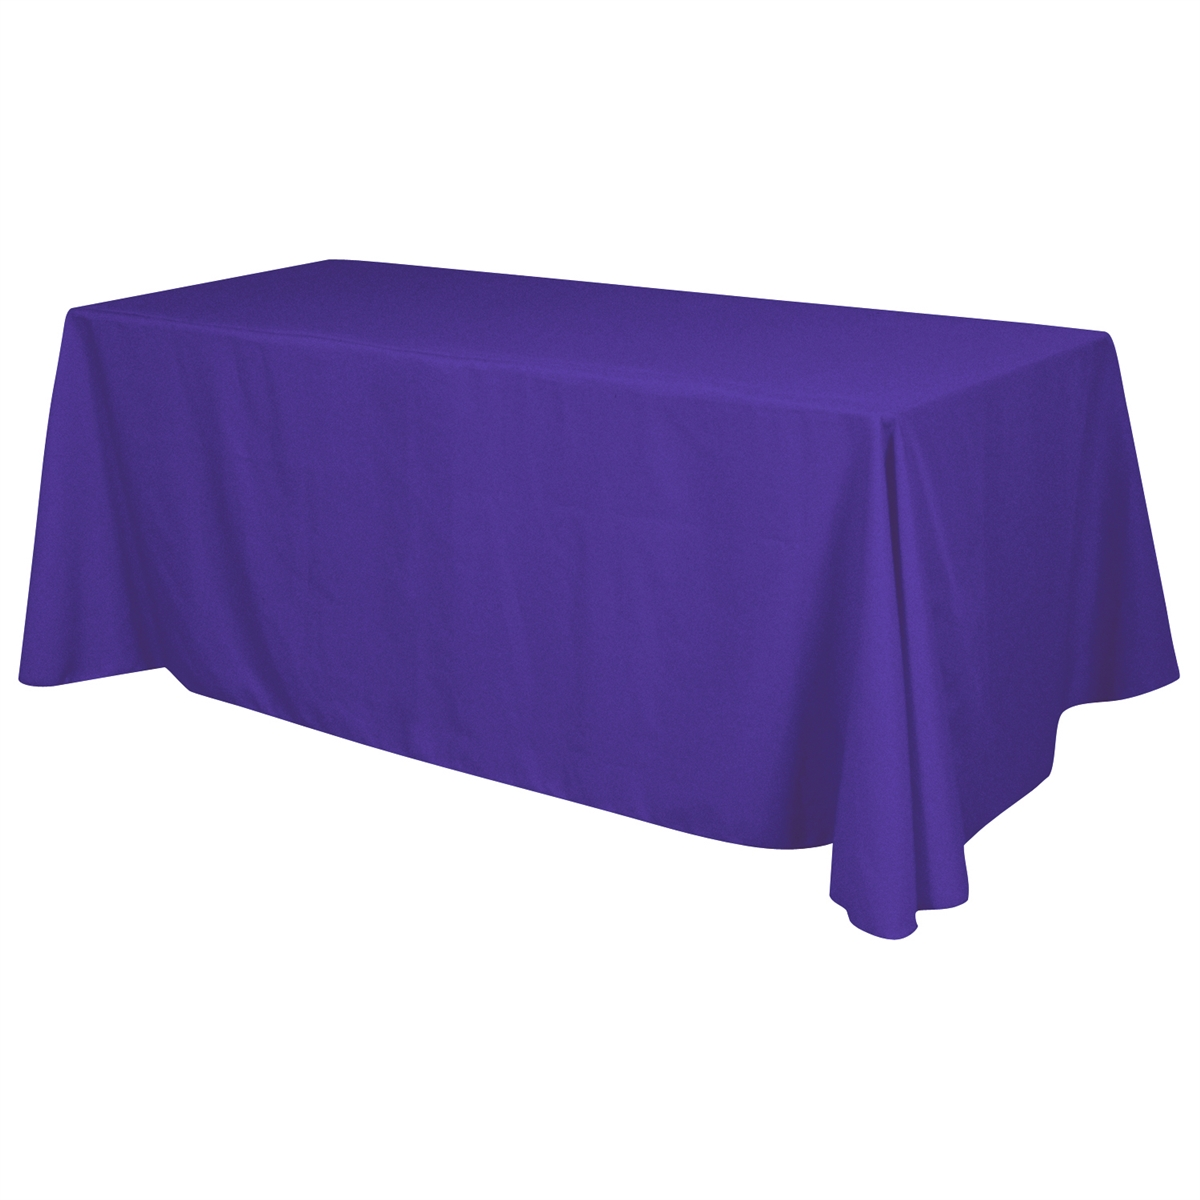 8 ft x 30 x 29 Standard Table Throw - BLANK Standard Table Throw - 4 Sided No Imprint